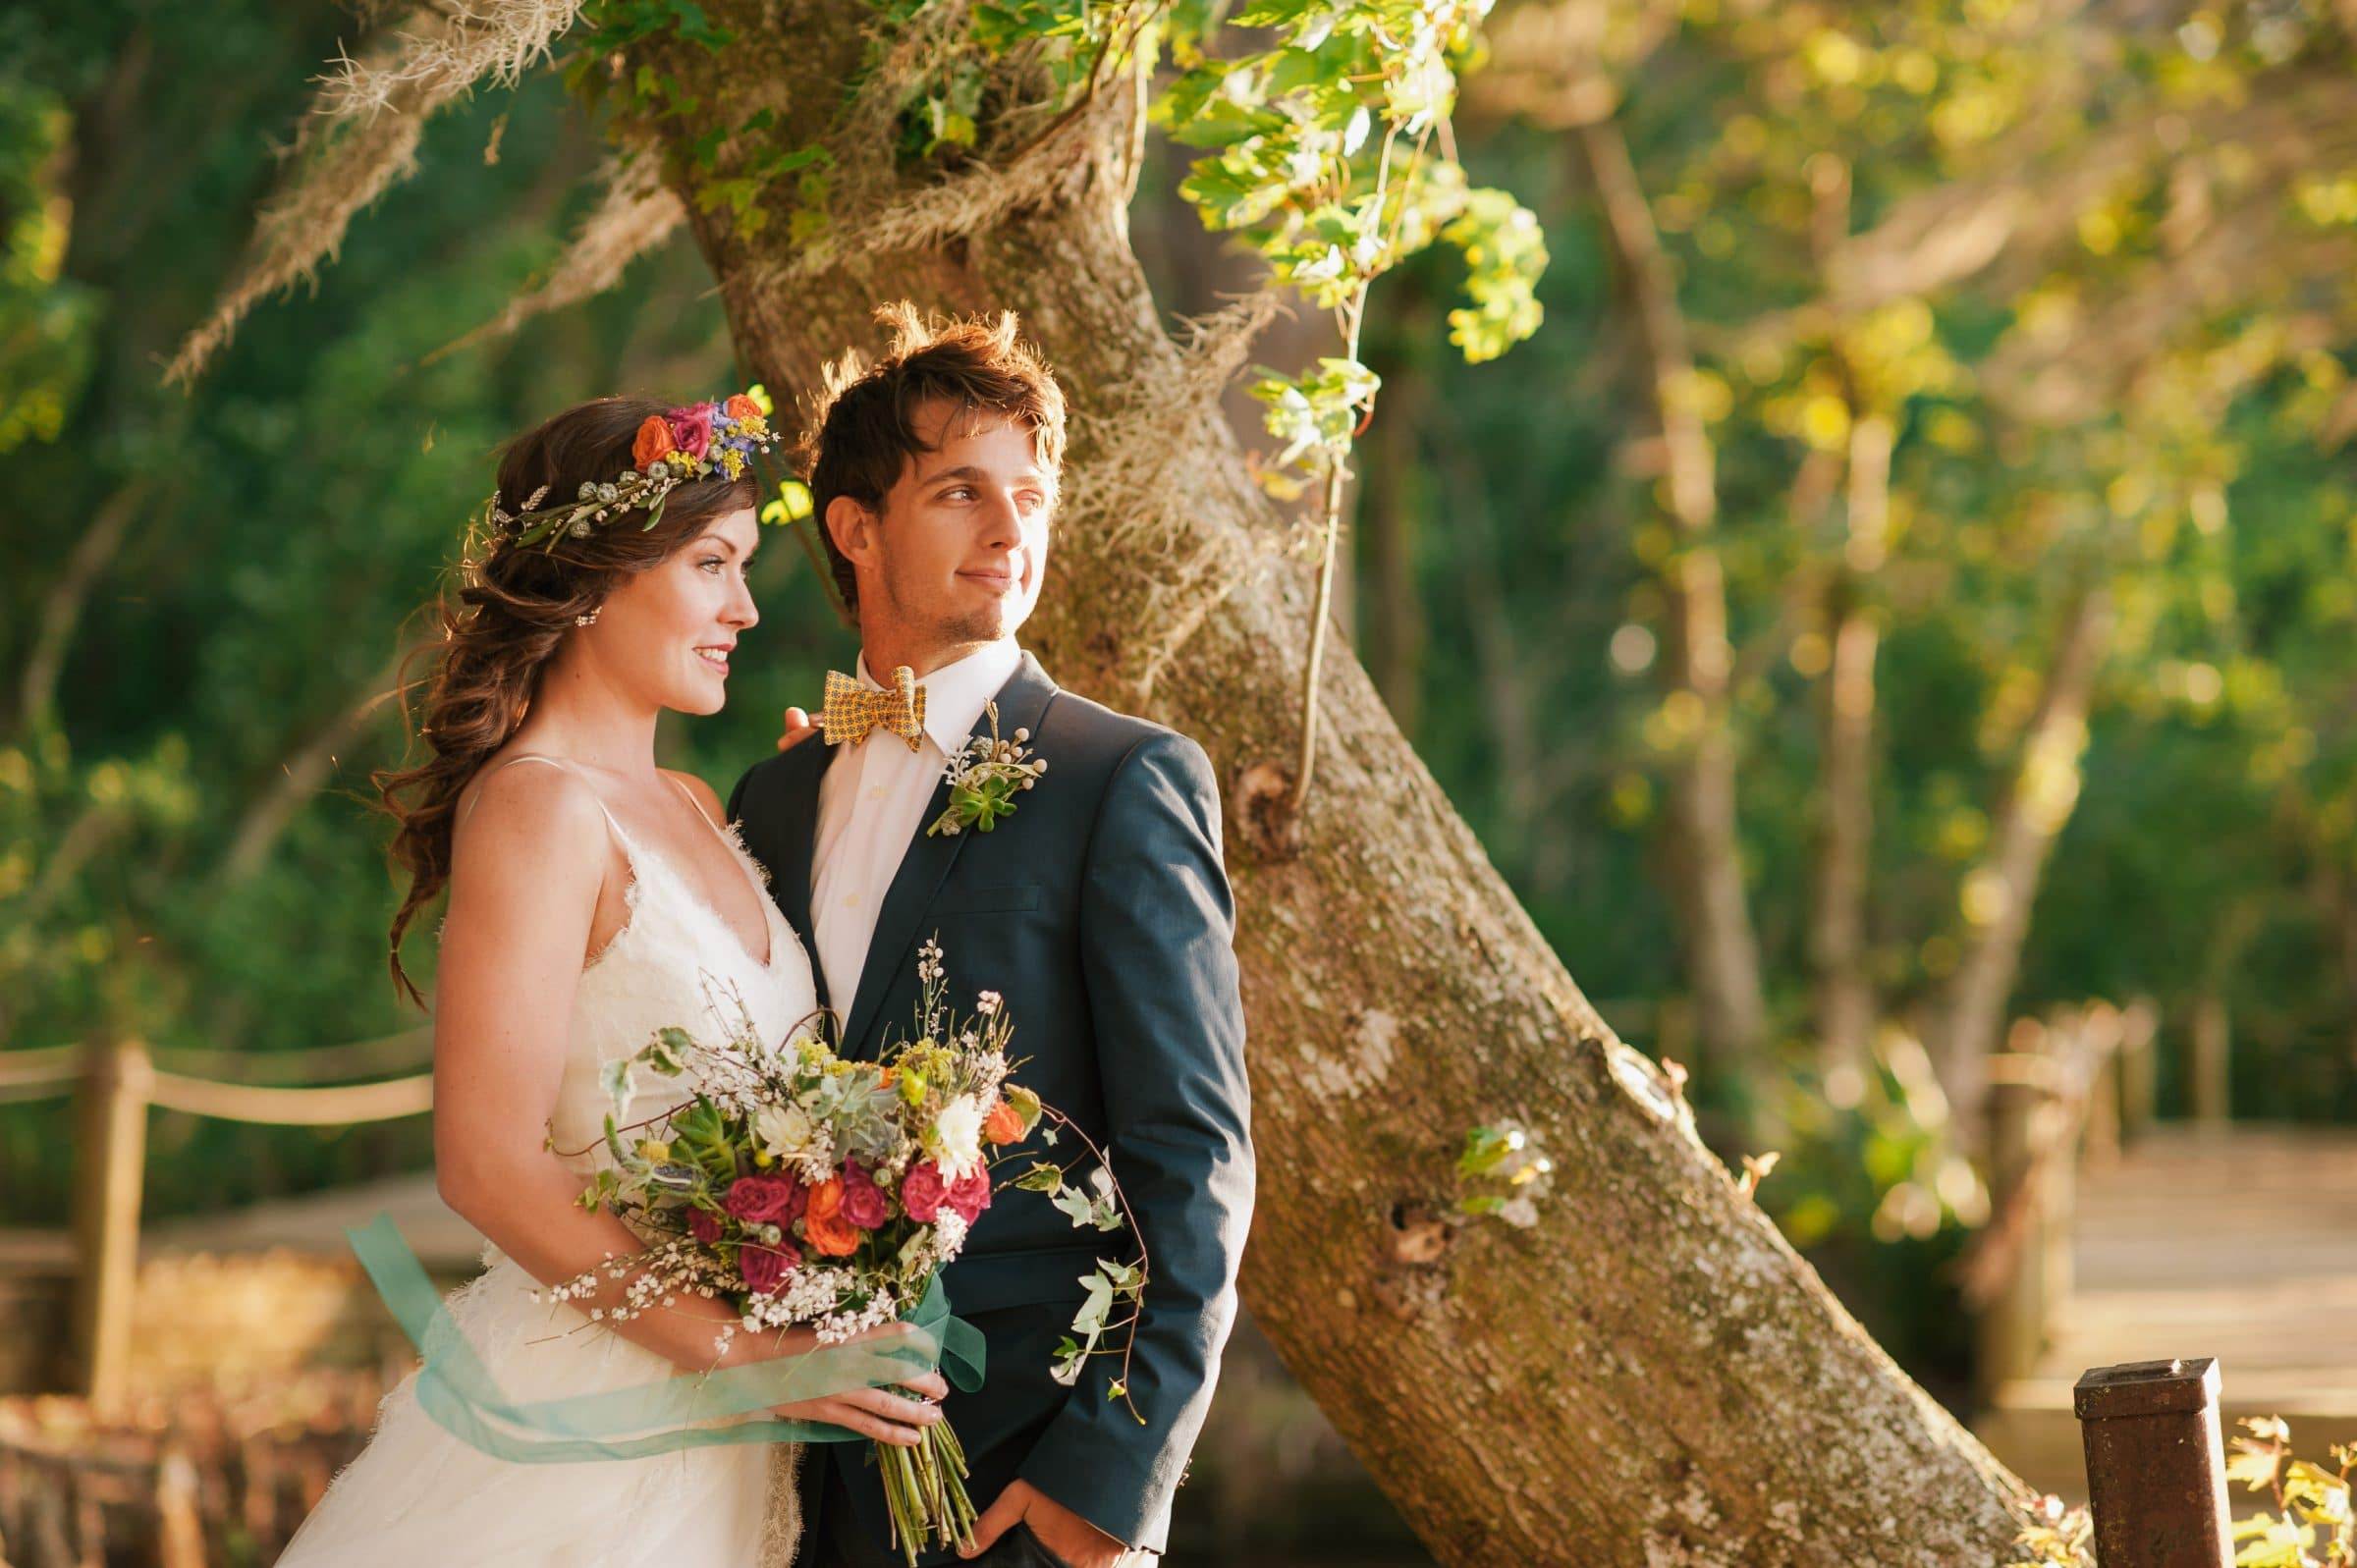 Beautiful Boho Wedding Bouquet Bride and Groom in the Woods